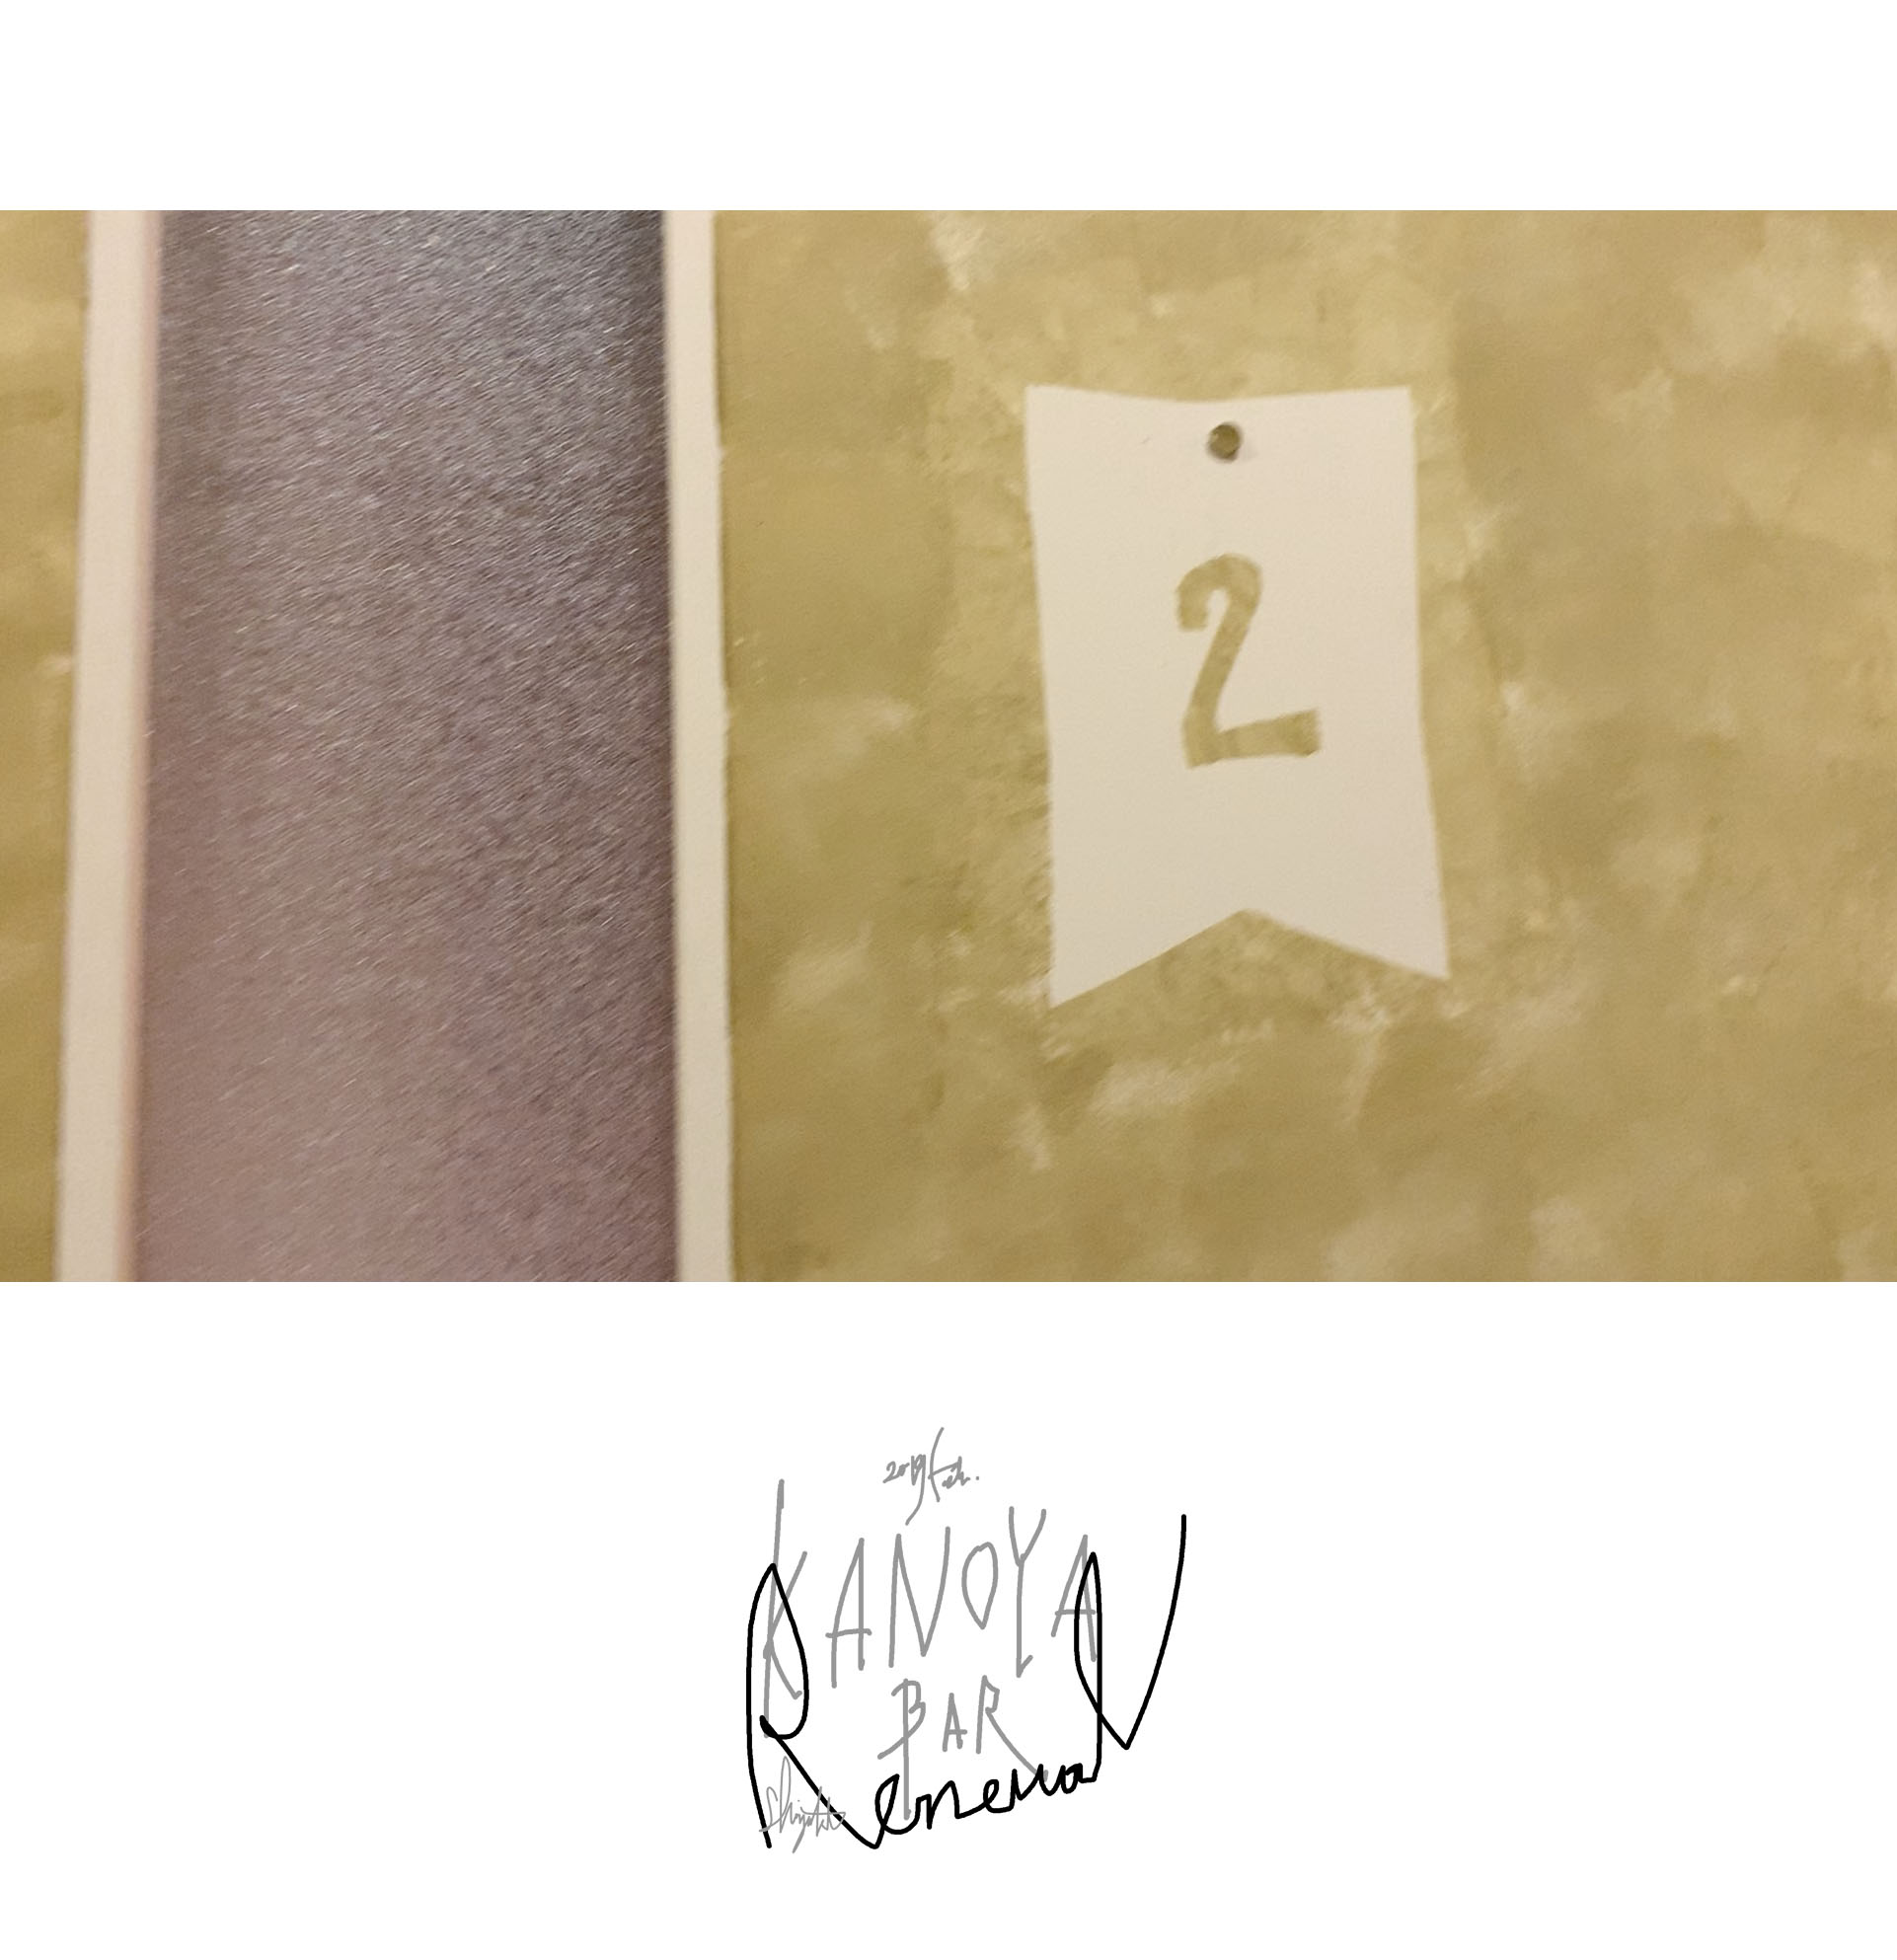 ROOM 2______2019.2   KANOYABAR  renewal  29